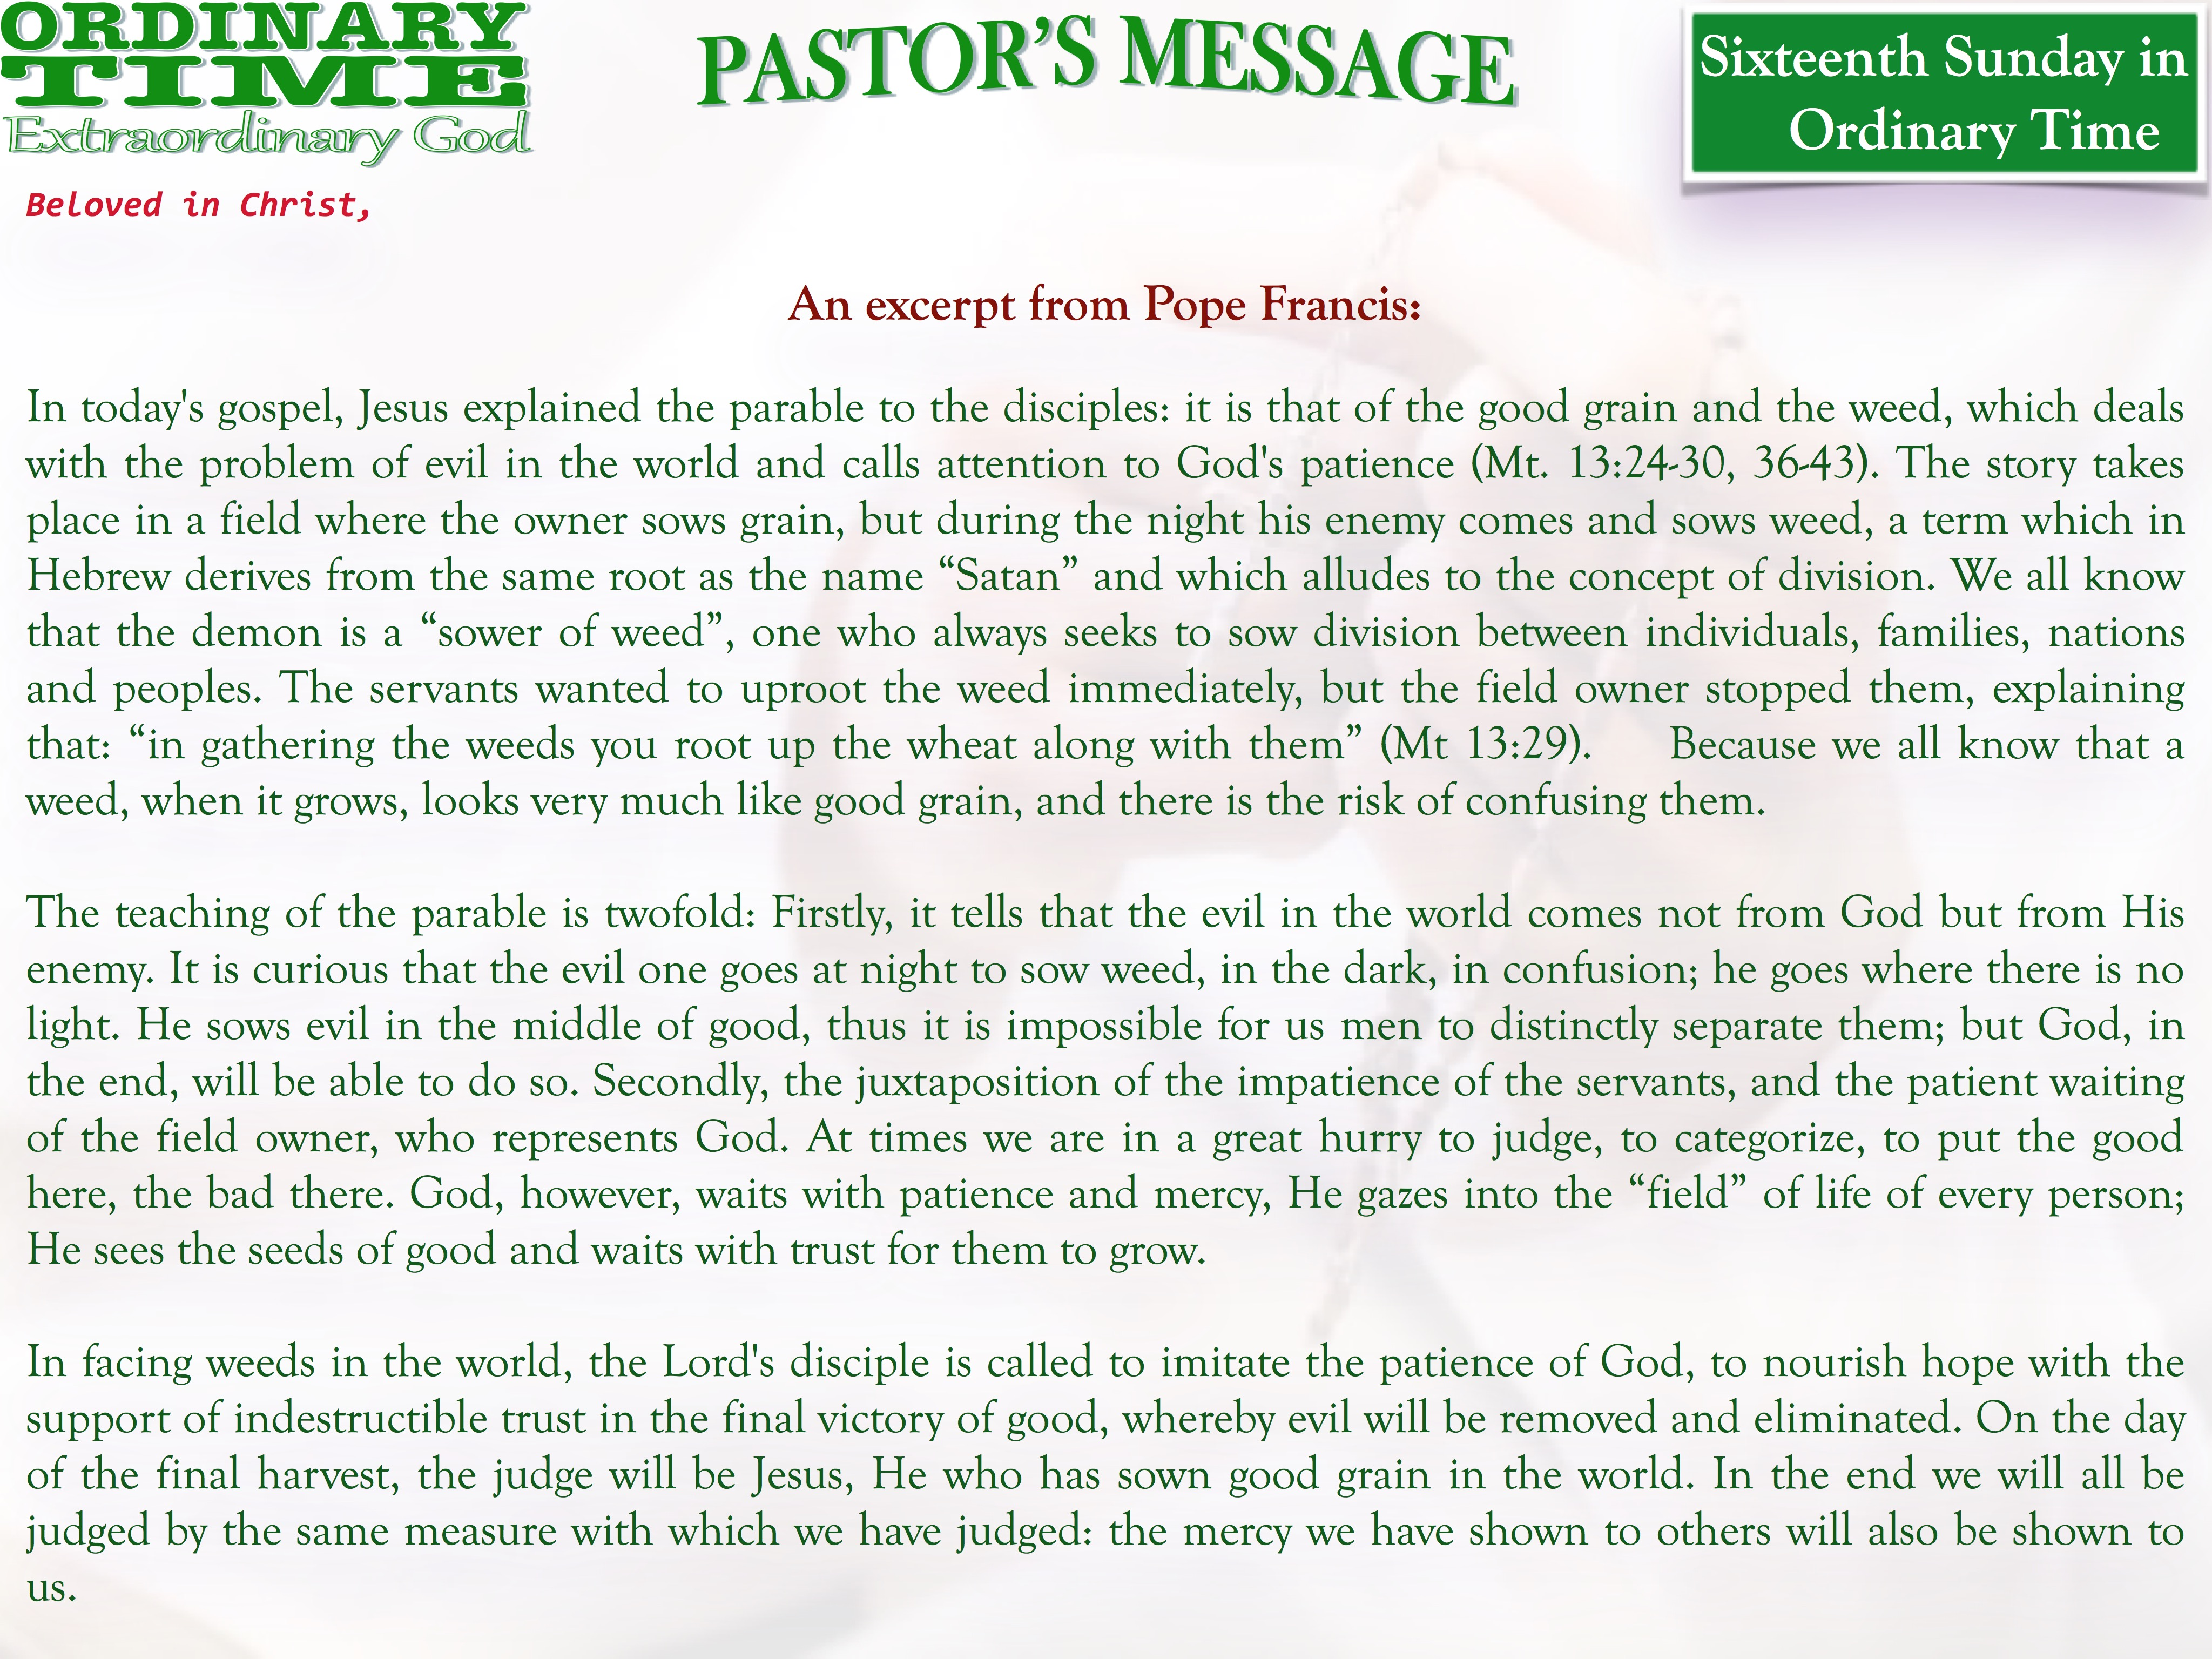 Pastor's Message - 20 Sixteenth Sunday in Ordinary Time